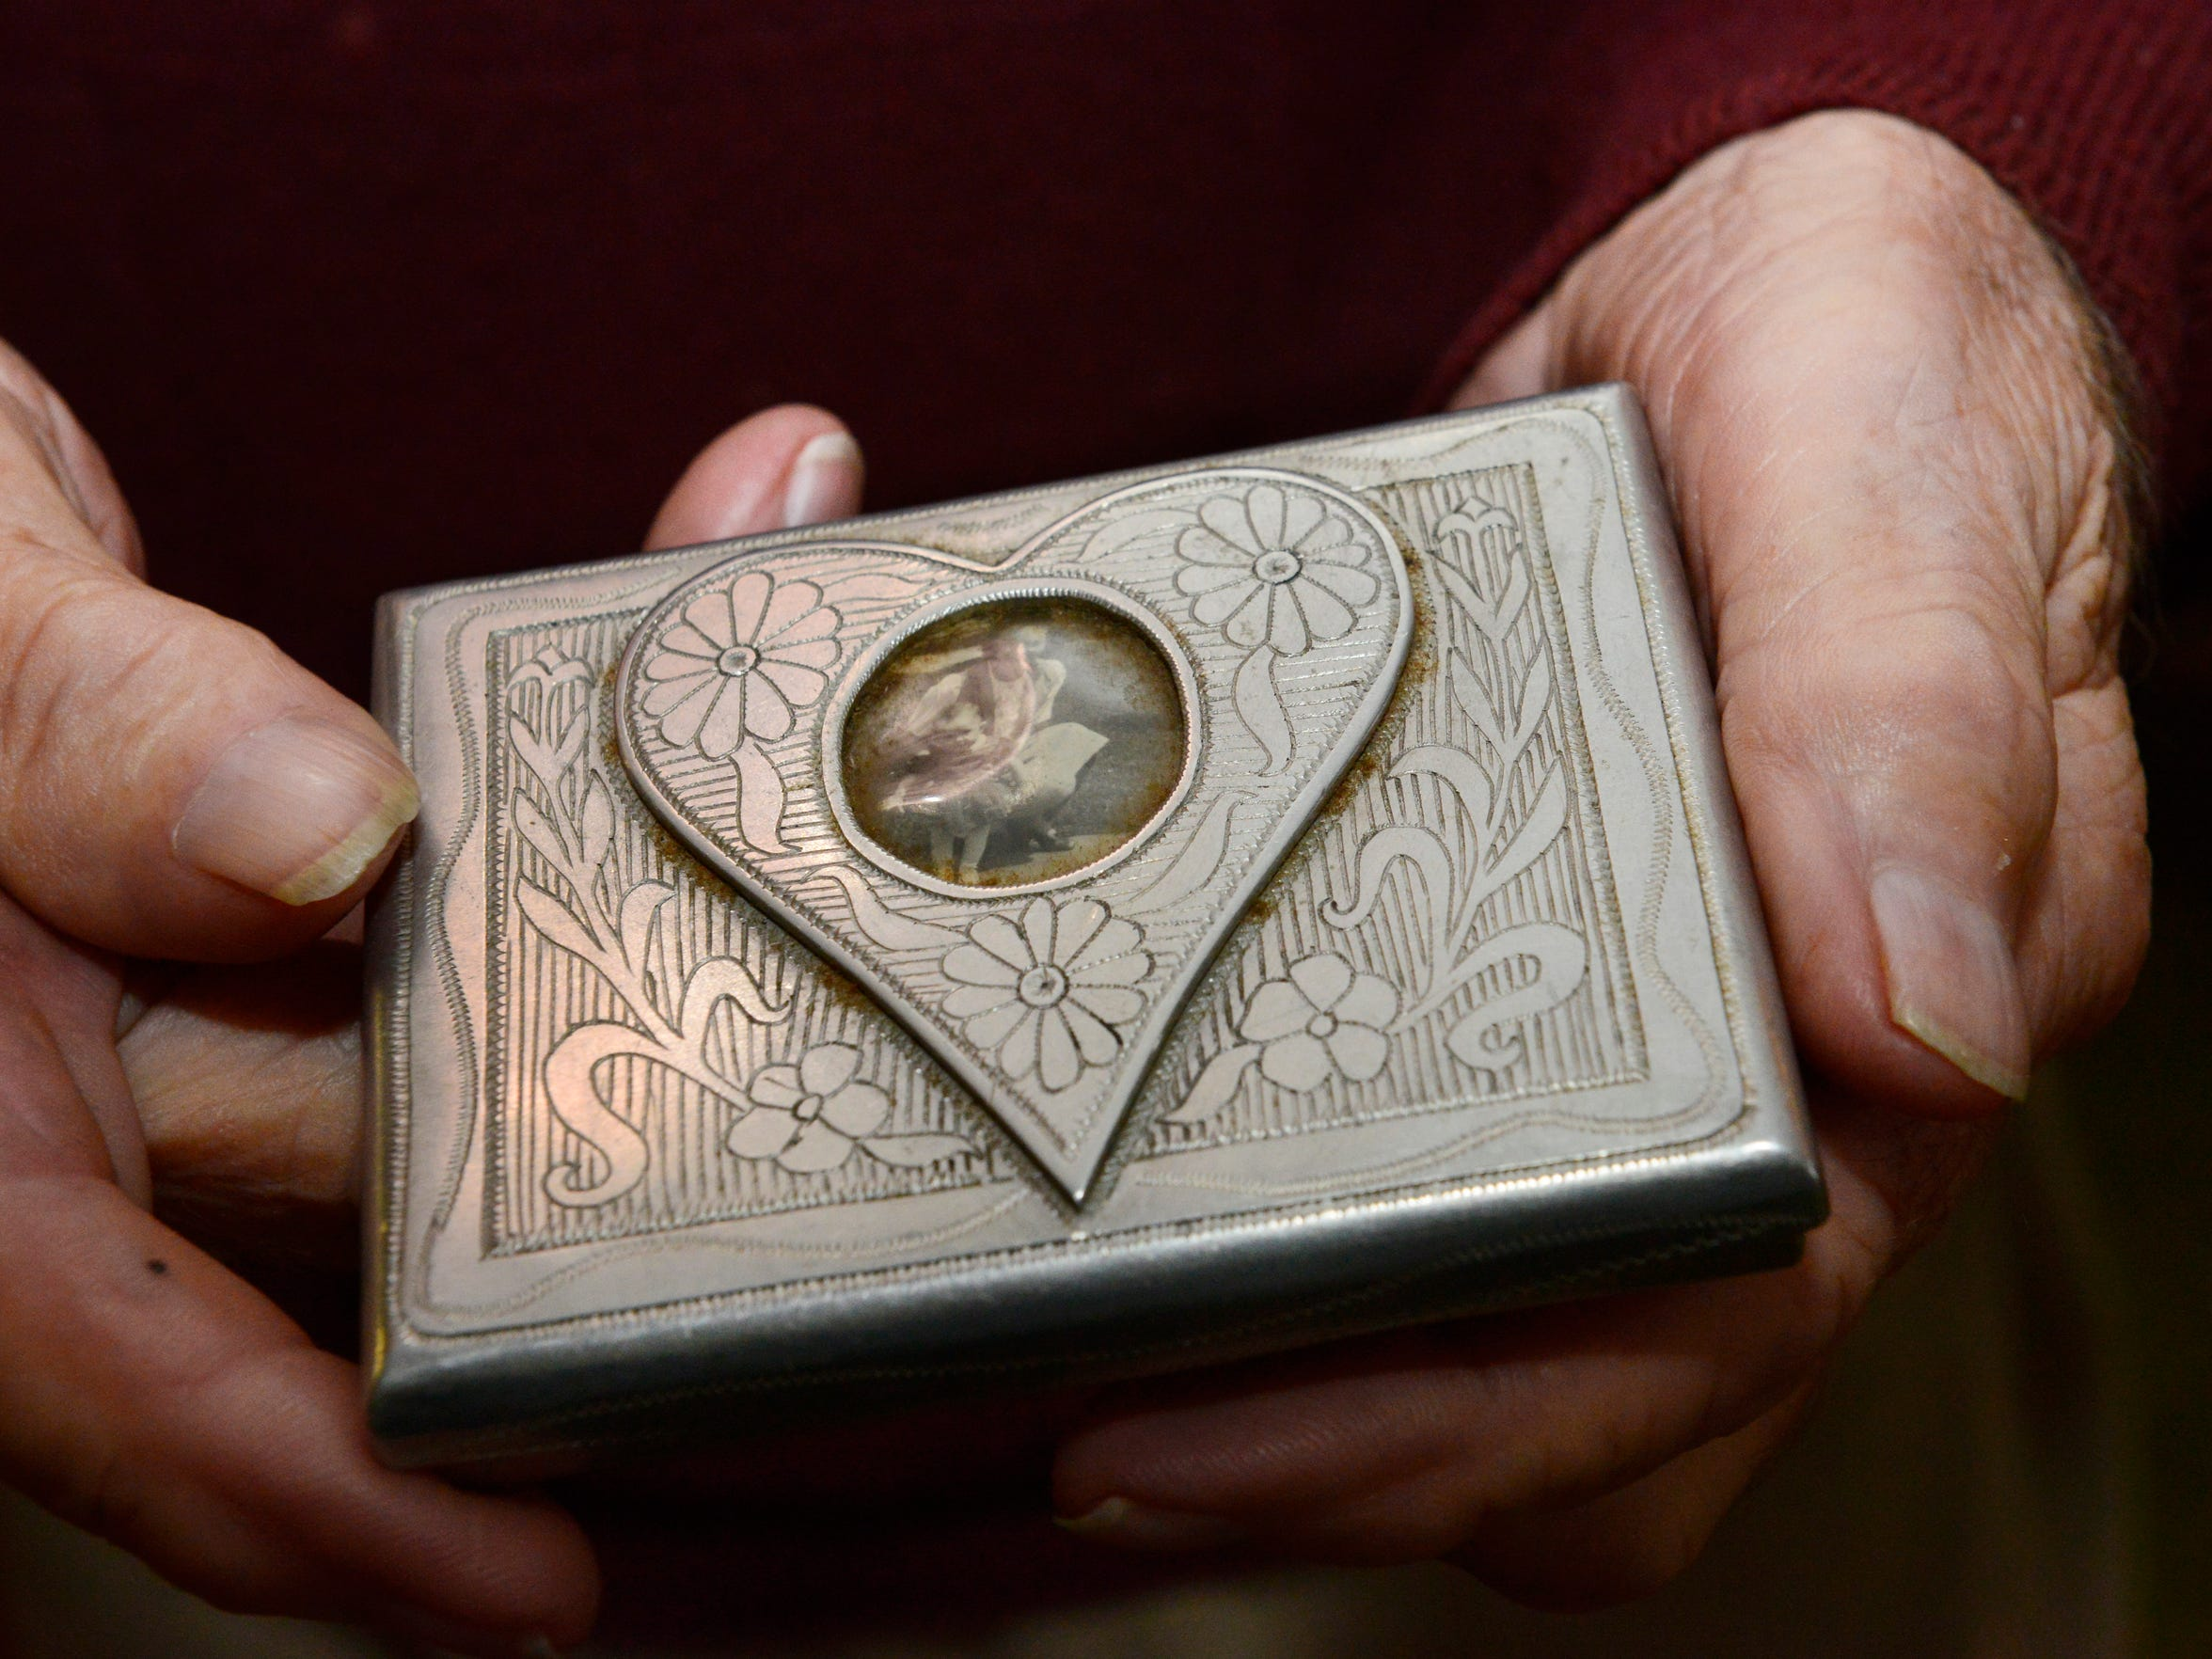 A Russian prisoner made Charles Holcomb this cigarette case from aircraft aluminum in exchange for food. Earlier, the photo of his future wife of 70 years and niece was confiscated inside a matchbook by an interrogator, who returned only the photo.